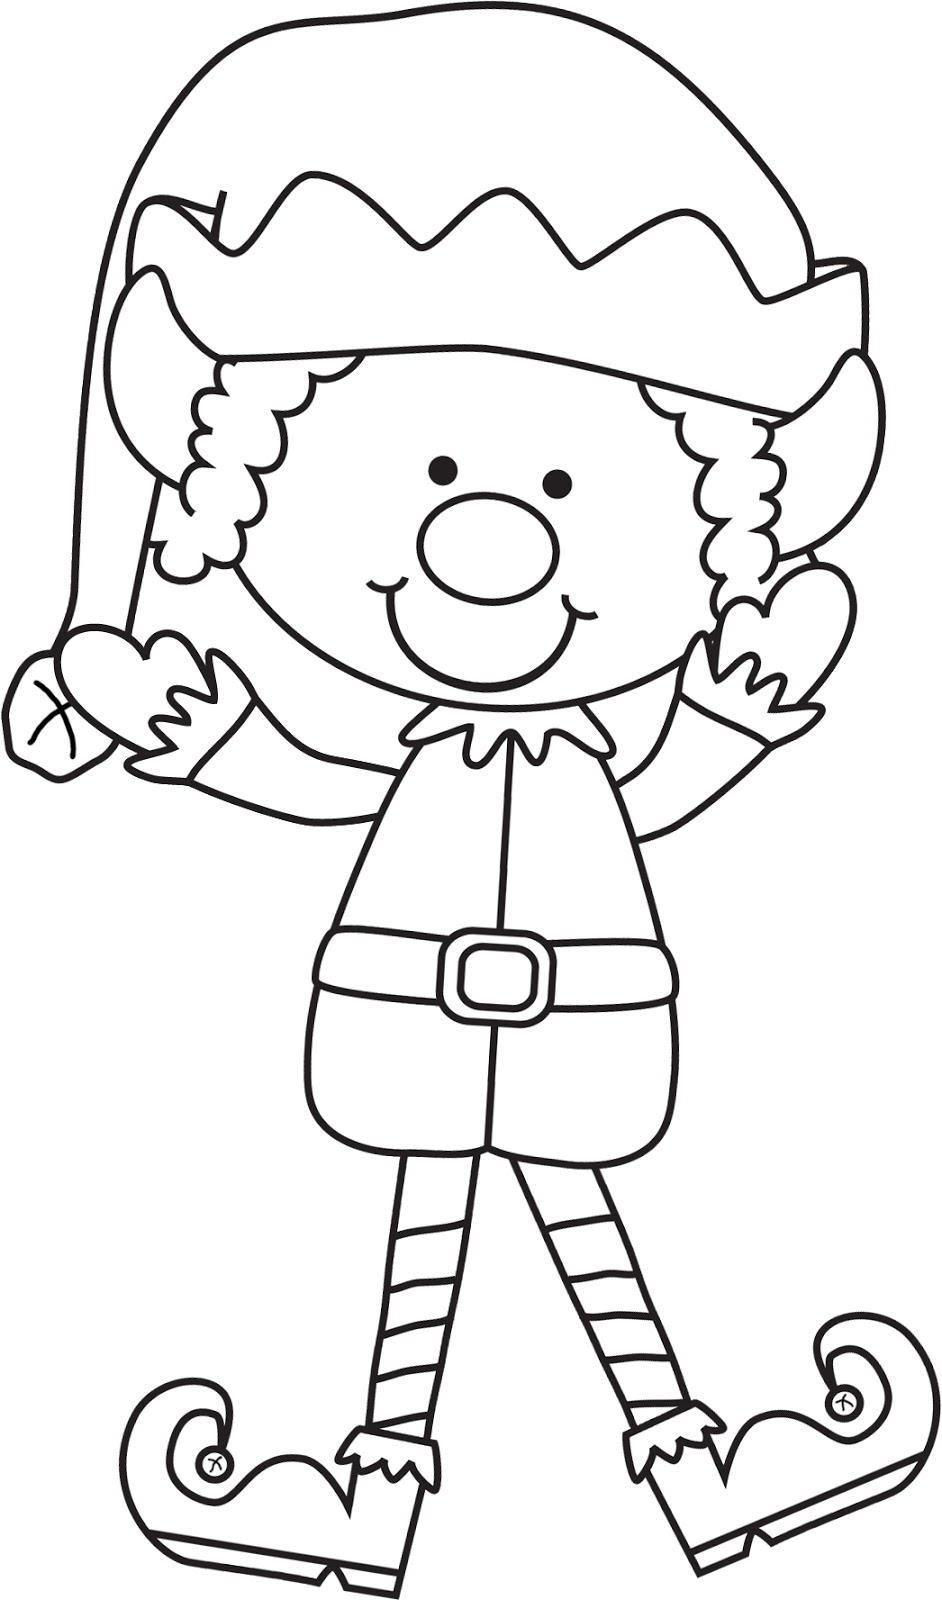 It's just a picture of Obsessed Elves Coloring Page